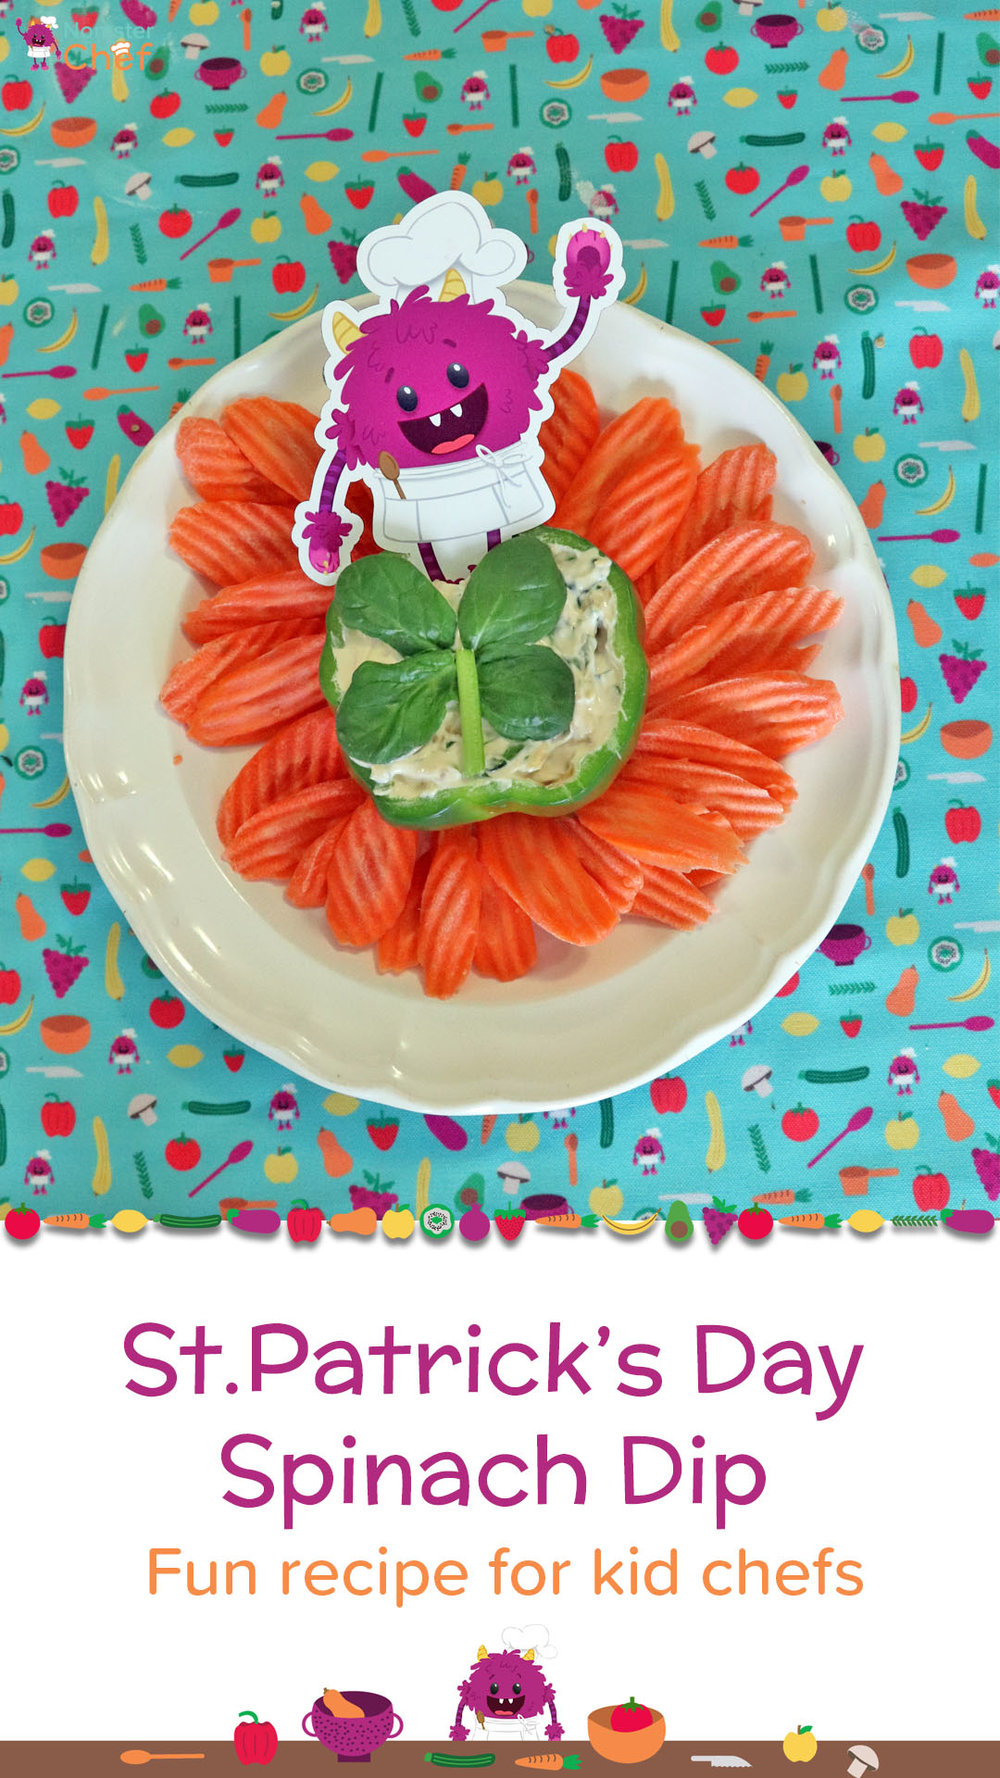 St-Patrick's-Day-Spinach-Dip-Nomster-Chef